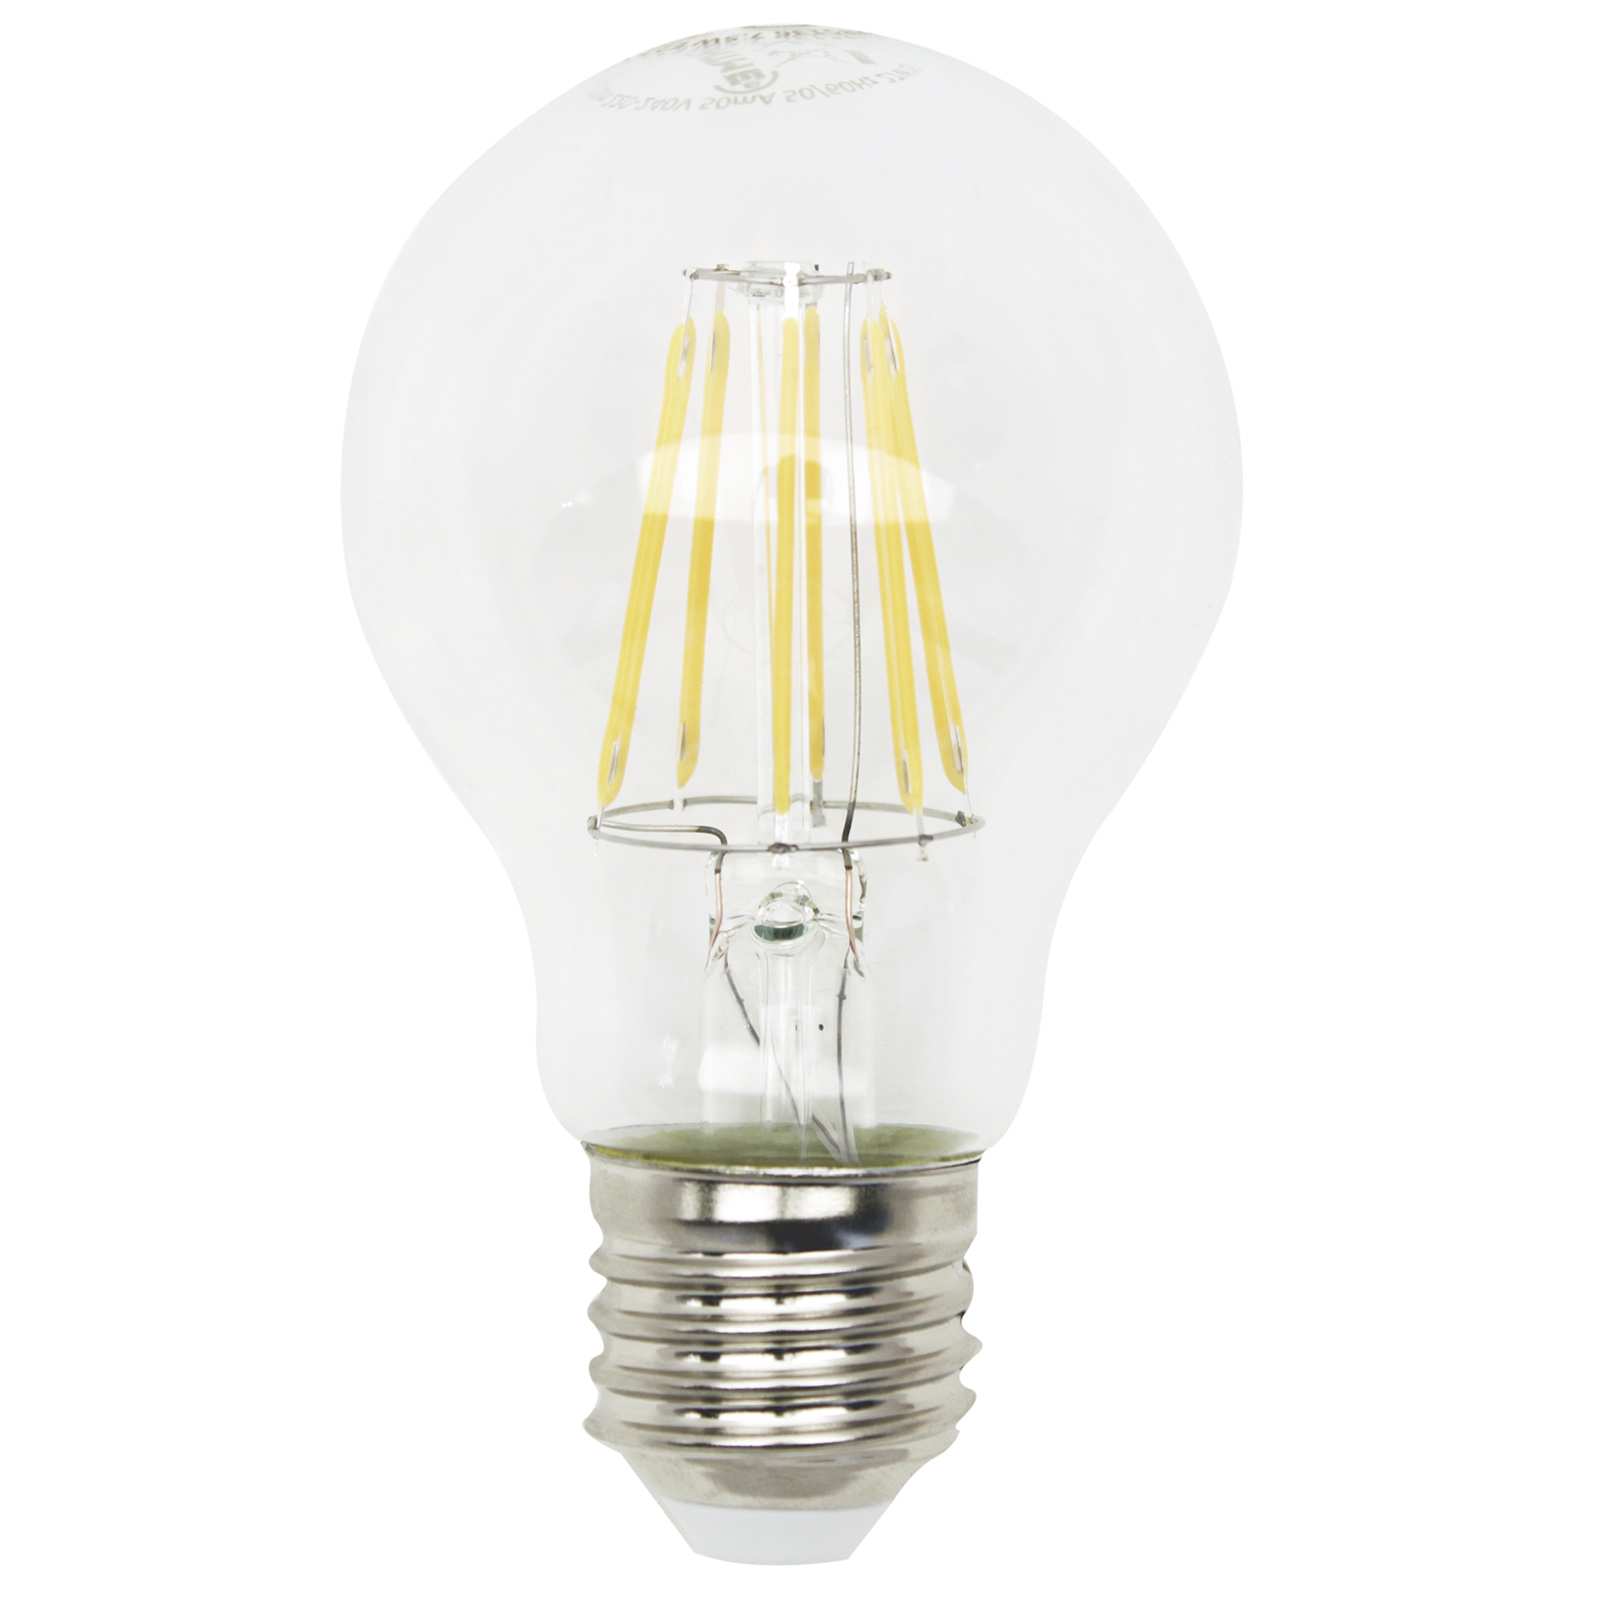 LED-Glühlampe Filament - E27 - 7,5 Watt - warmweiß